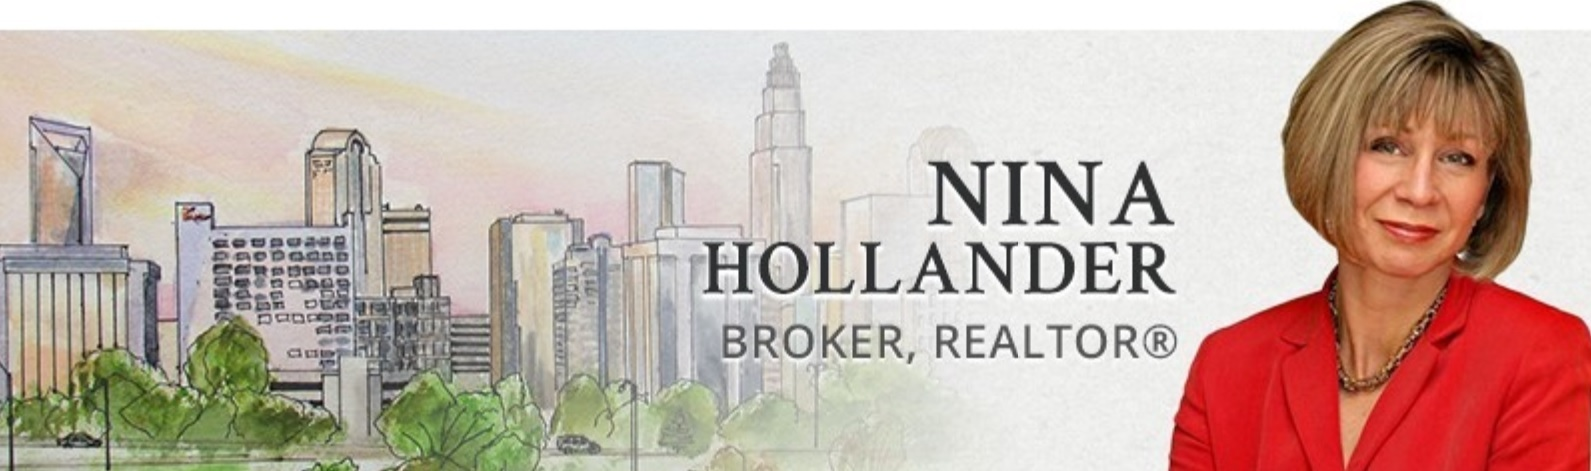 Nina Hollander, RE/MAX Broker, Realtor